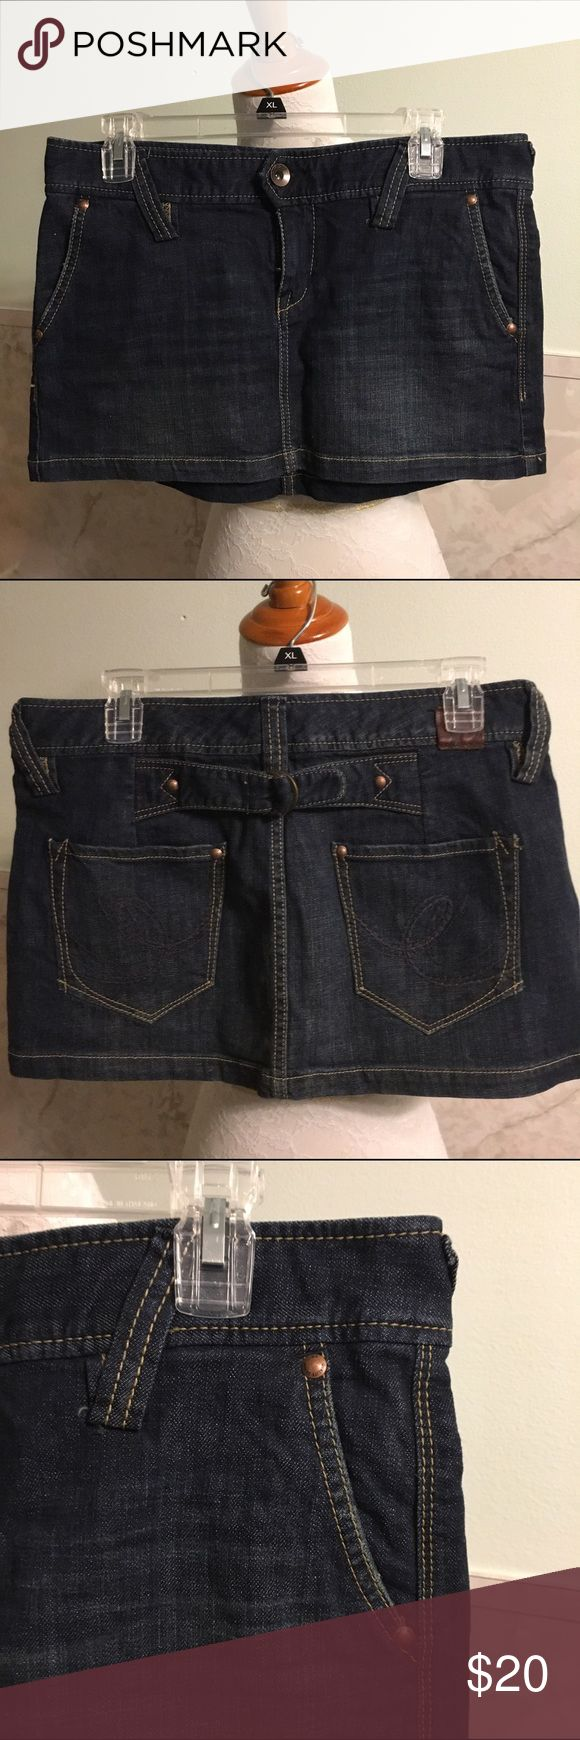 """NWT Express X2 Denim Micro Mini Skirt 8 💃🏻 This is an ultra cute micro mini denim skirt from Express in a size 8. It's from their X2 Denim line. This has two front pockets and two back ones. There's a decorative buckle across the middle of the back. Material is cotton with 1% spandex. Length is 12"""" and waist is 17"""" across. Express Skirts Mini"""